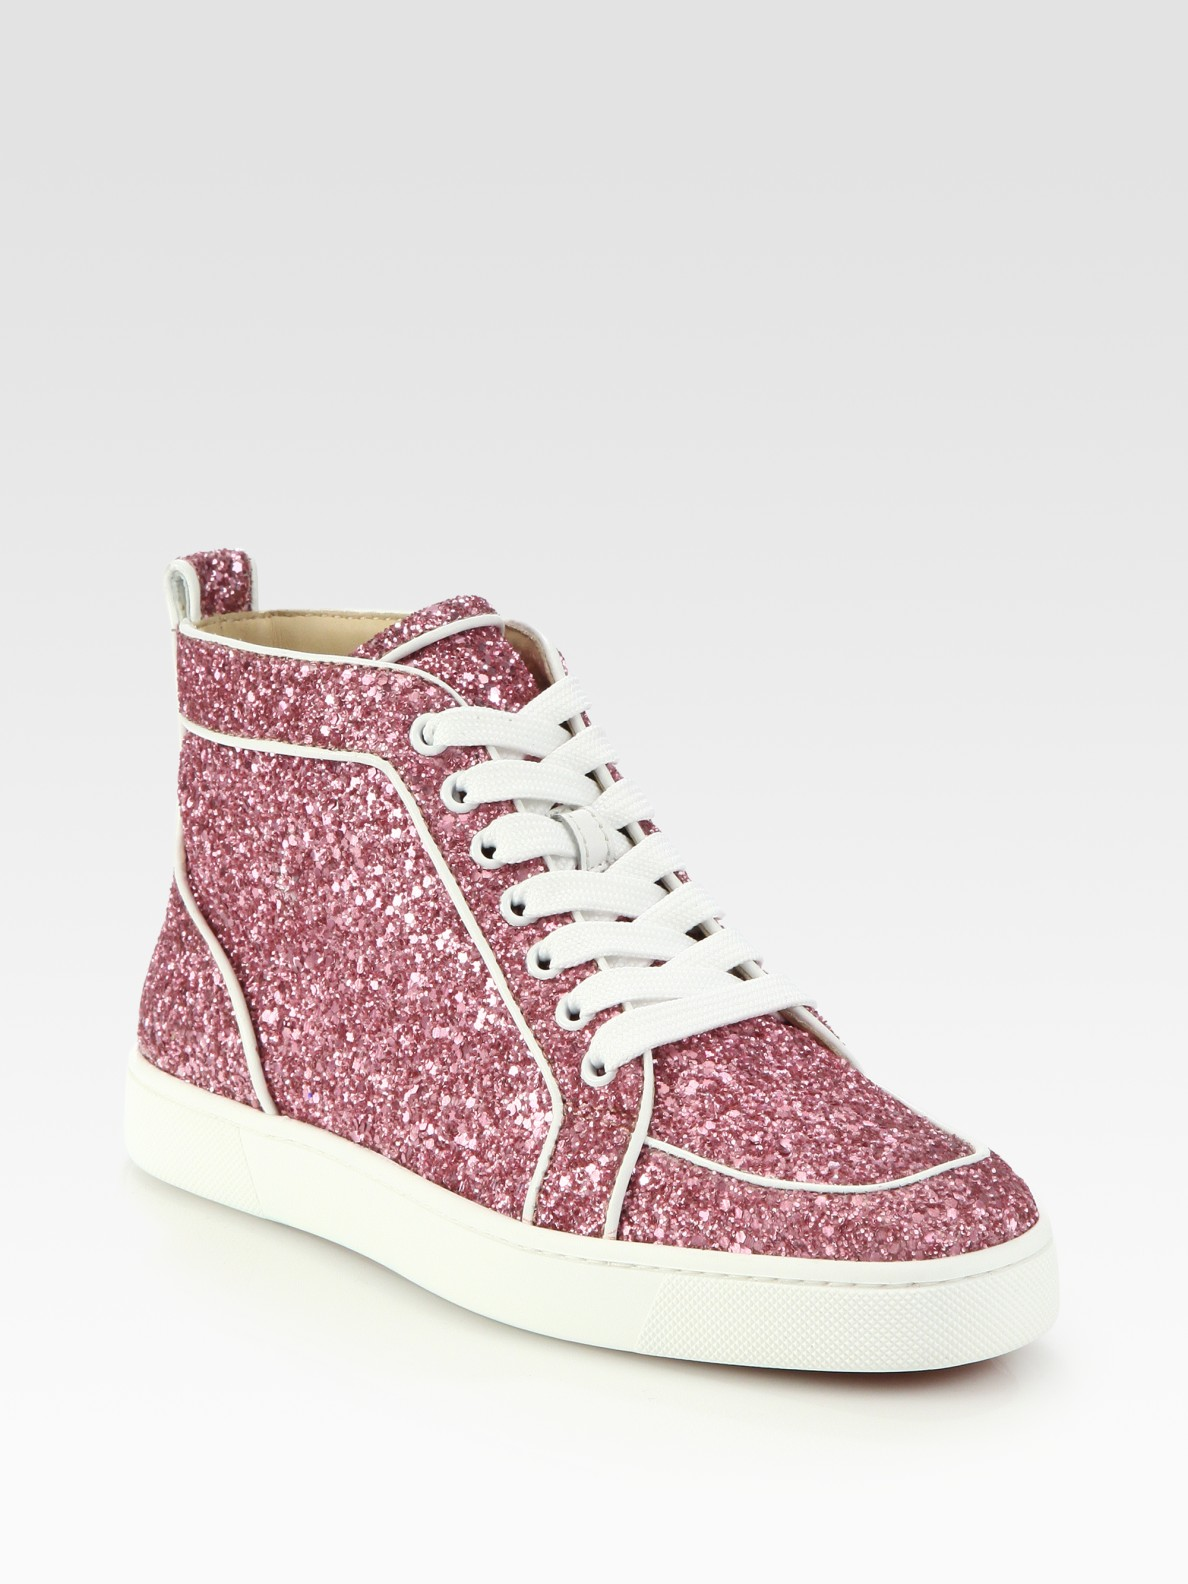 lyst christian louboutin rantus orlato glitter sneakers. Black Bedroom Furniture Sets. Home Design Ideas